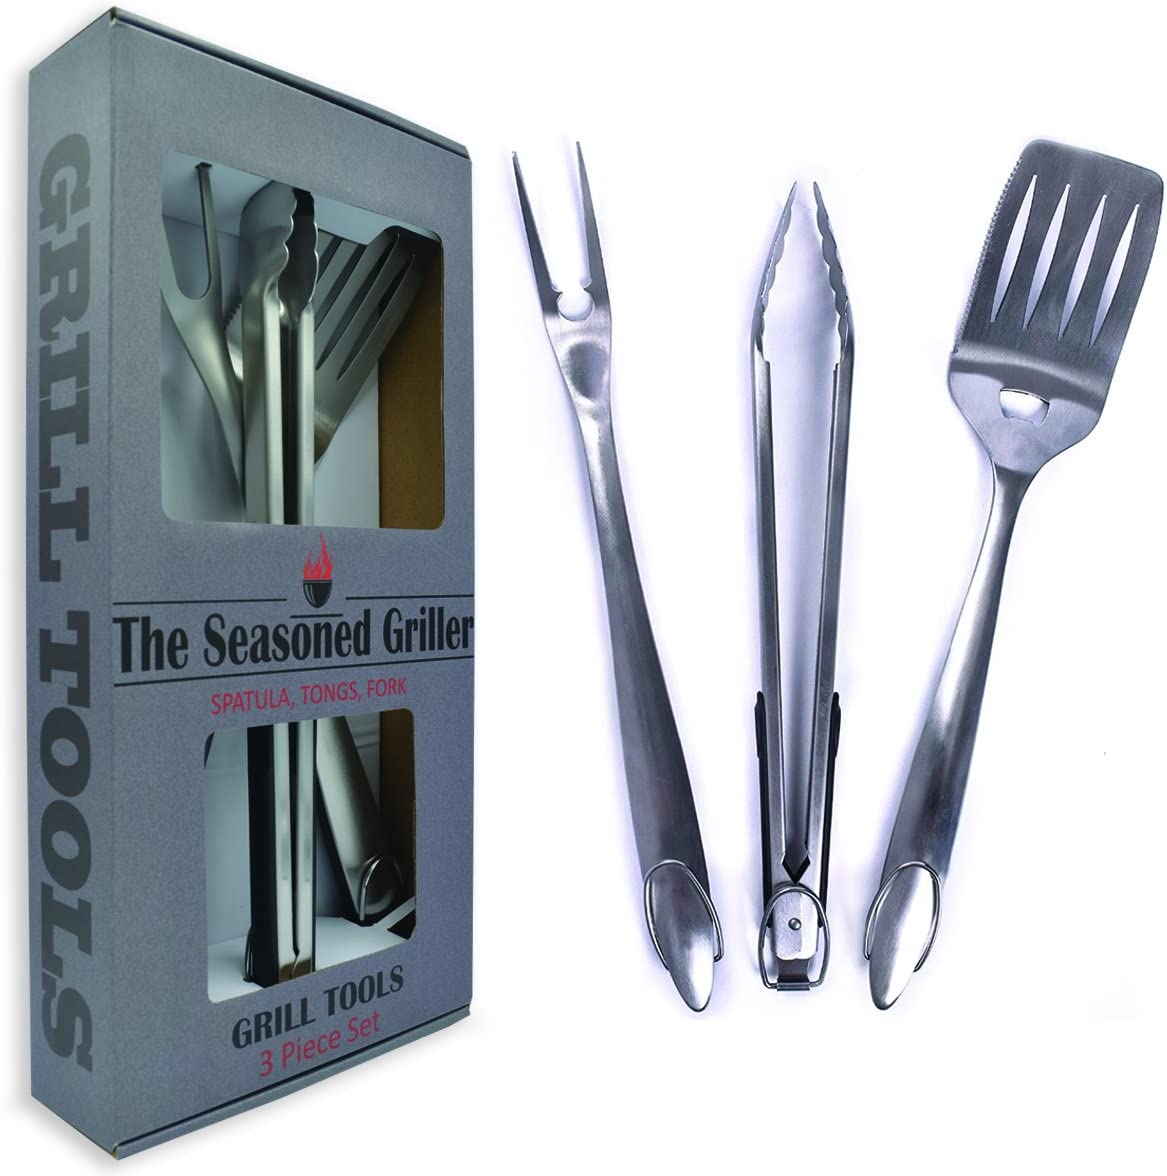 Extra Long Heavy Duty BBQ Grill Tools Set - 3 Piece Stainless Steel Utensils Set Includes Spatula Fork & Tongs - Barbecue Grilling Accessories - Outdoor Grilling kit in Gift Box Packaging